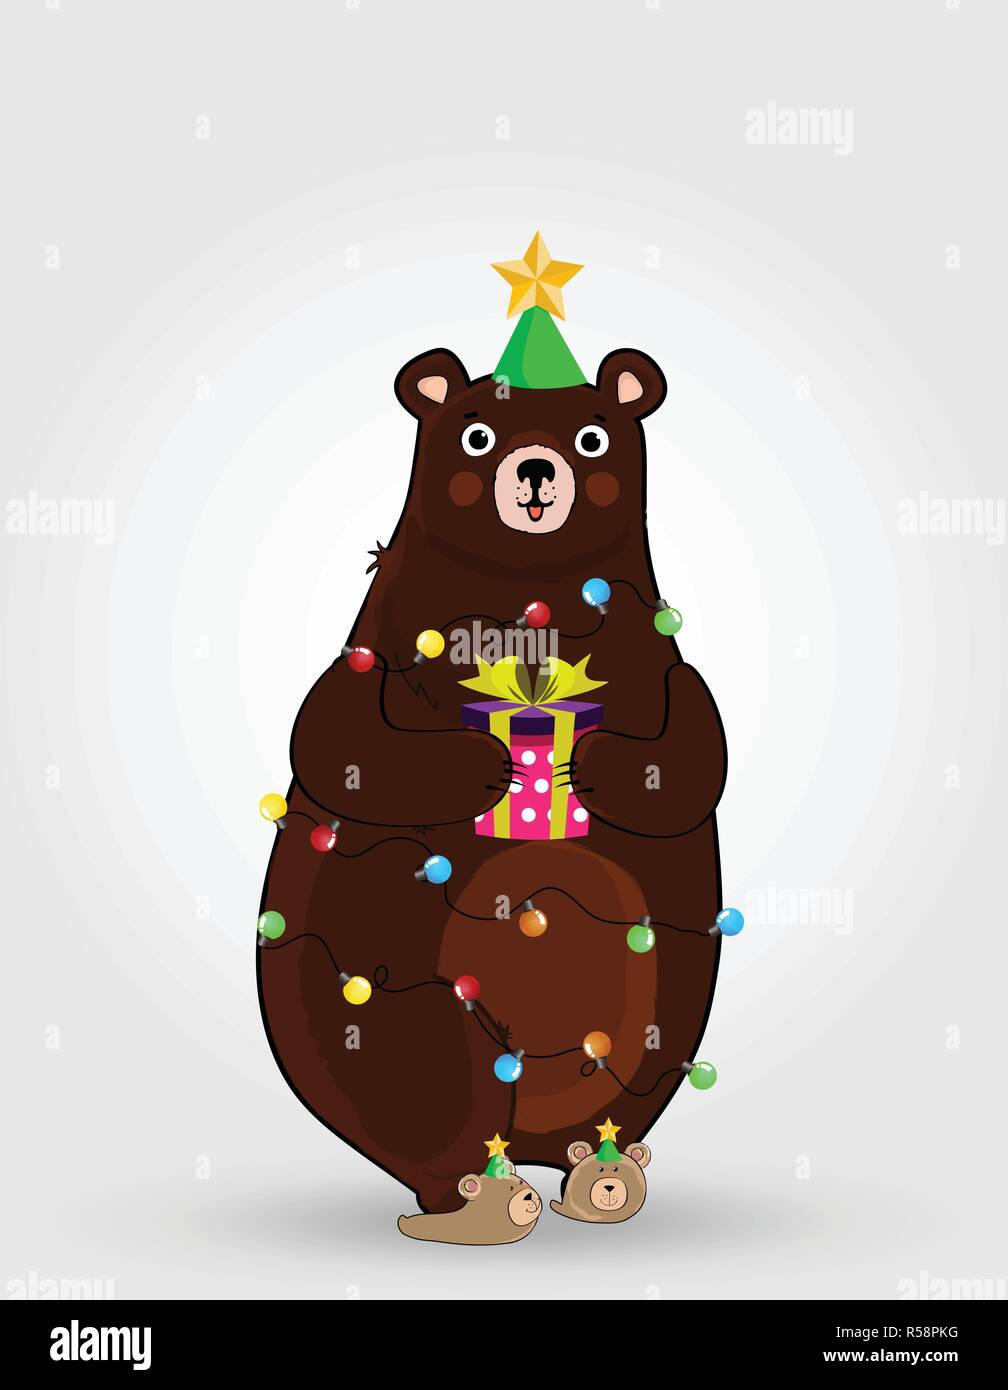 Image of: Narwhal Vector Illustration Of Cute Cartoon Bear Character In Funny Hat And Garland Lights Holding Festive Gift Box Isolated On White Background Christmas Alamy Vector Illustration Of Cute Cartoon Bear Character In Funny Hat And